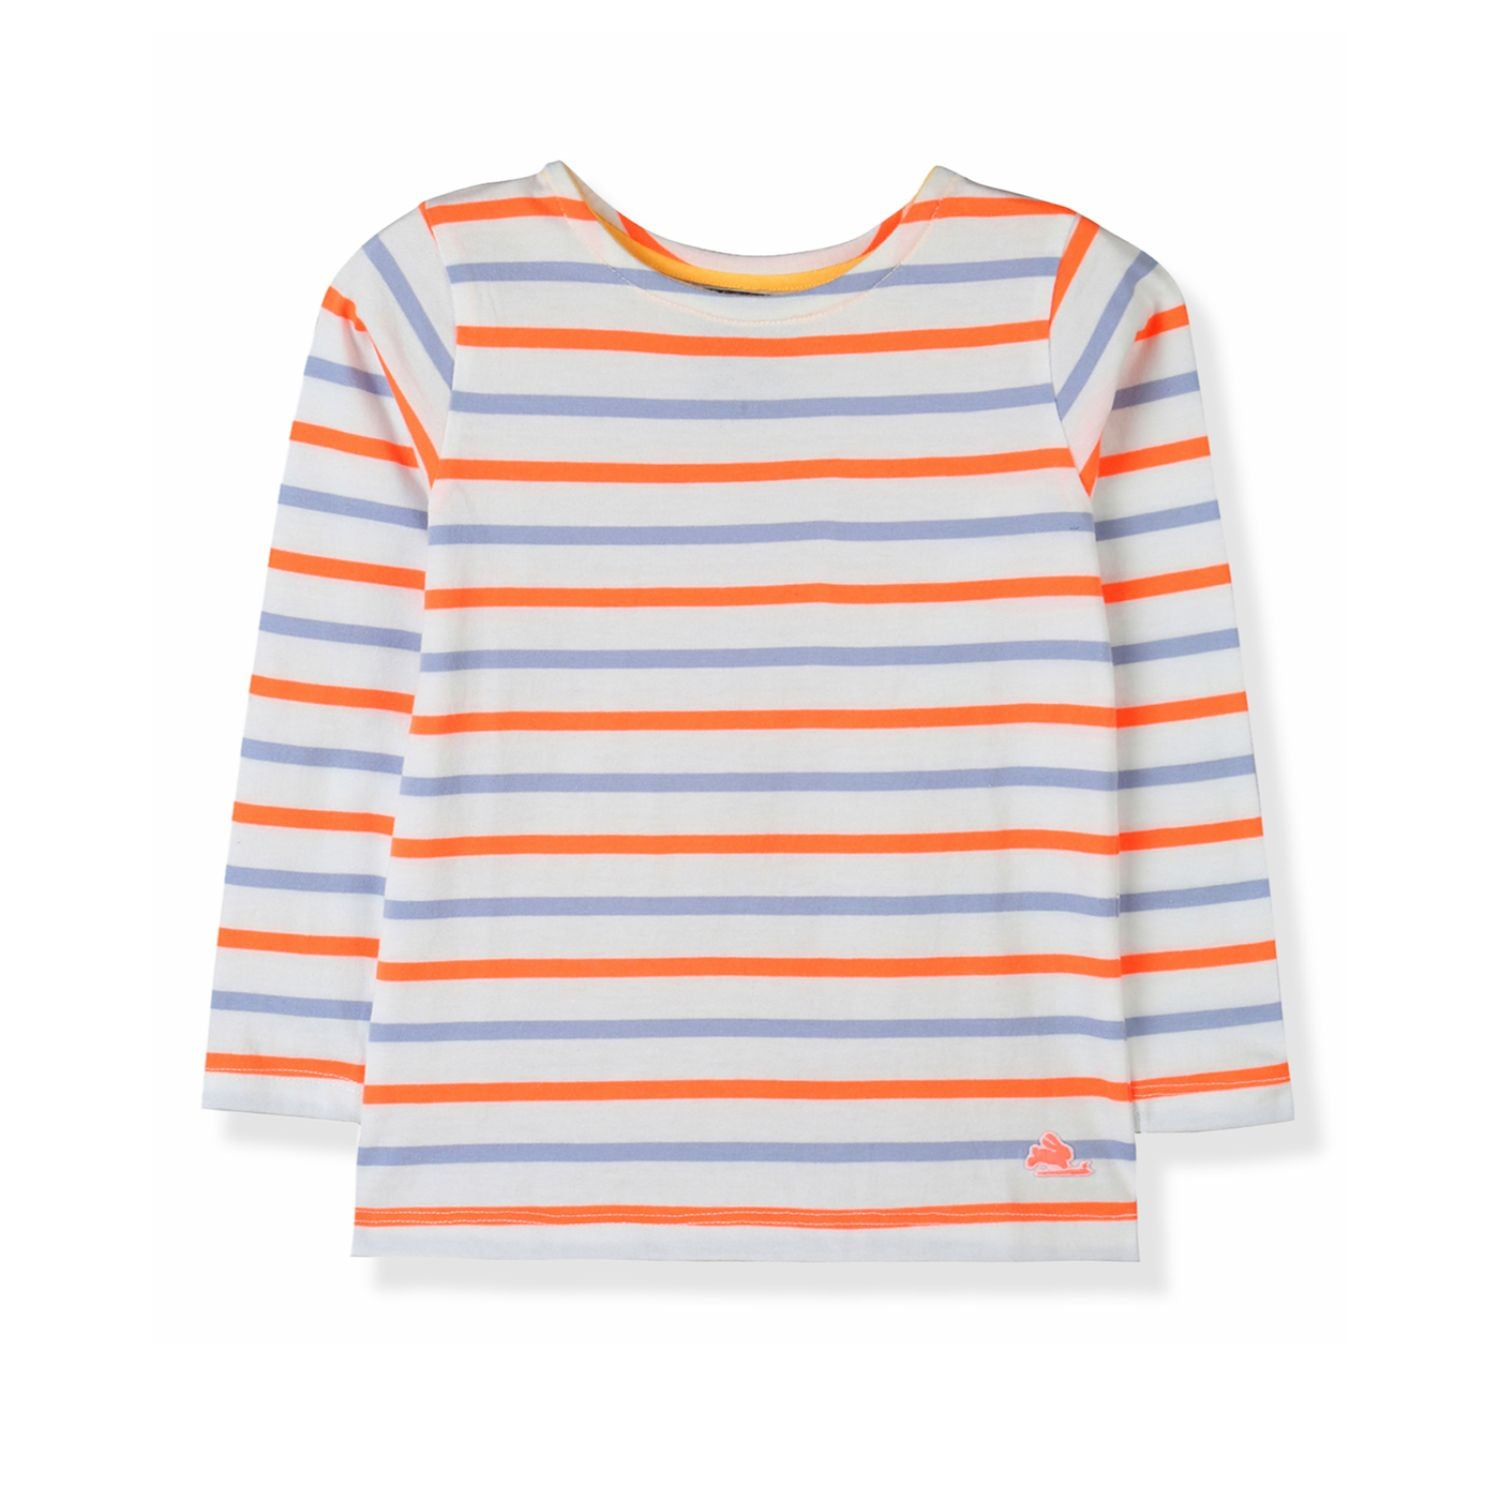 Basic Knitted Tee for kids